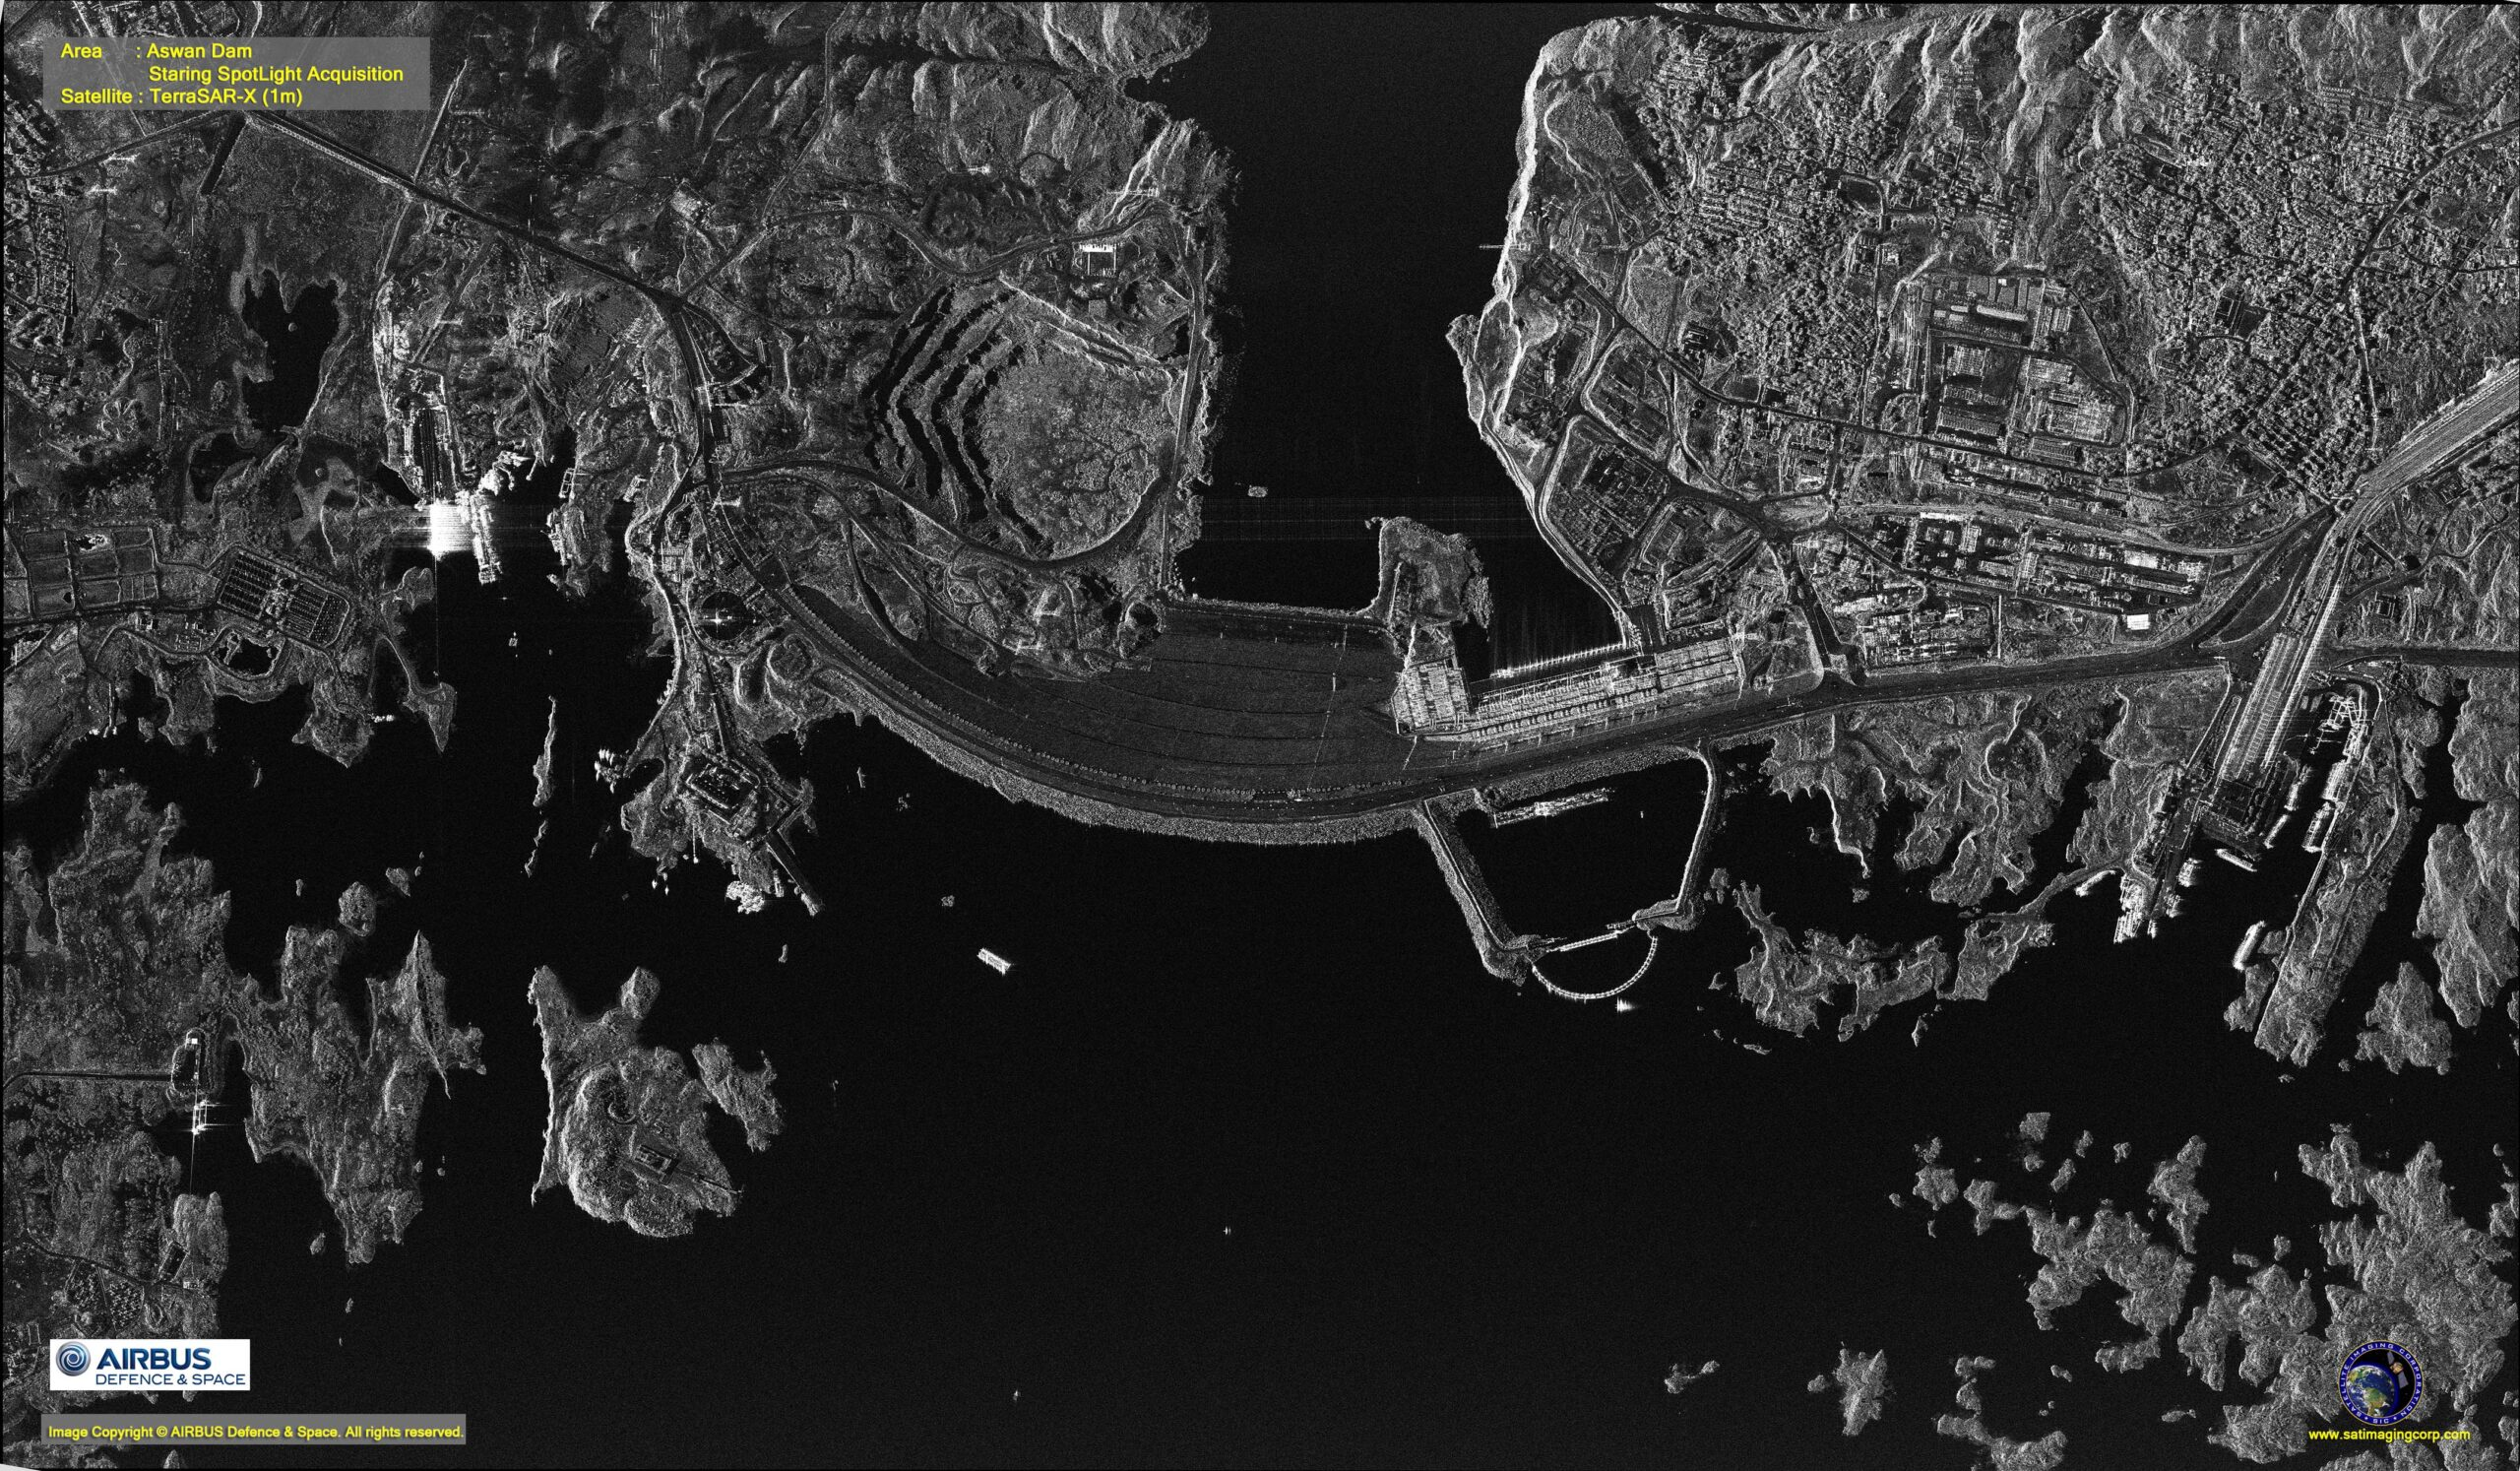 SAR image of the Aswan Dam in Egypt.